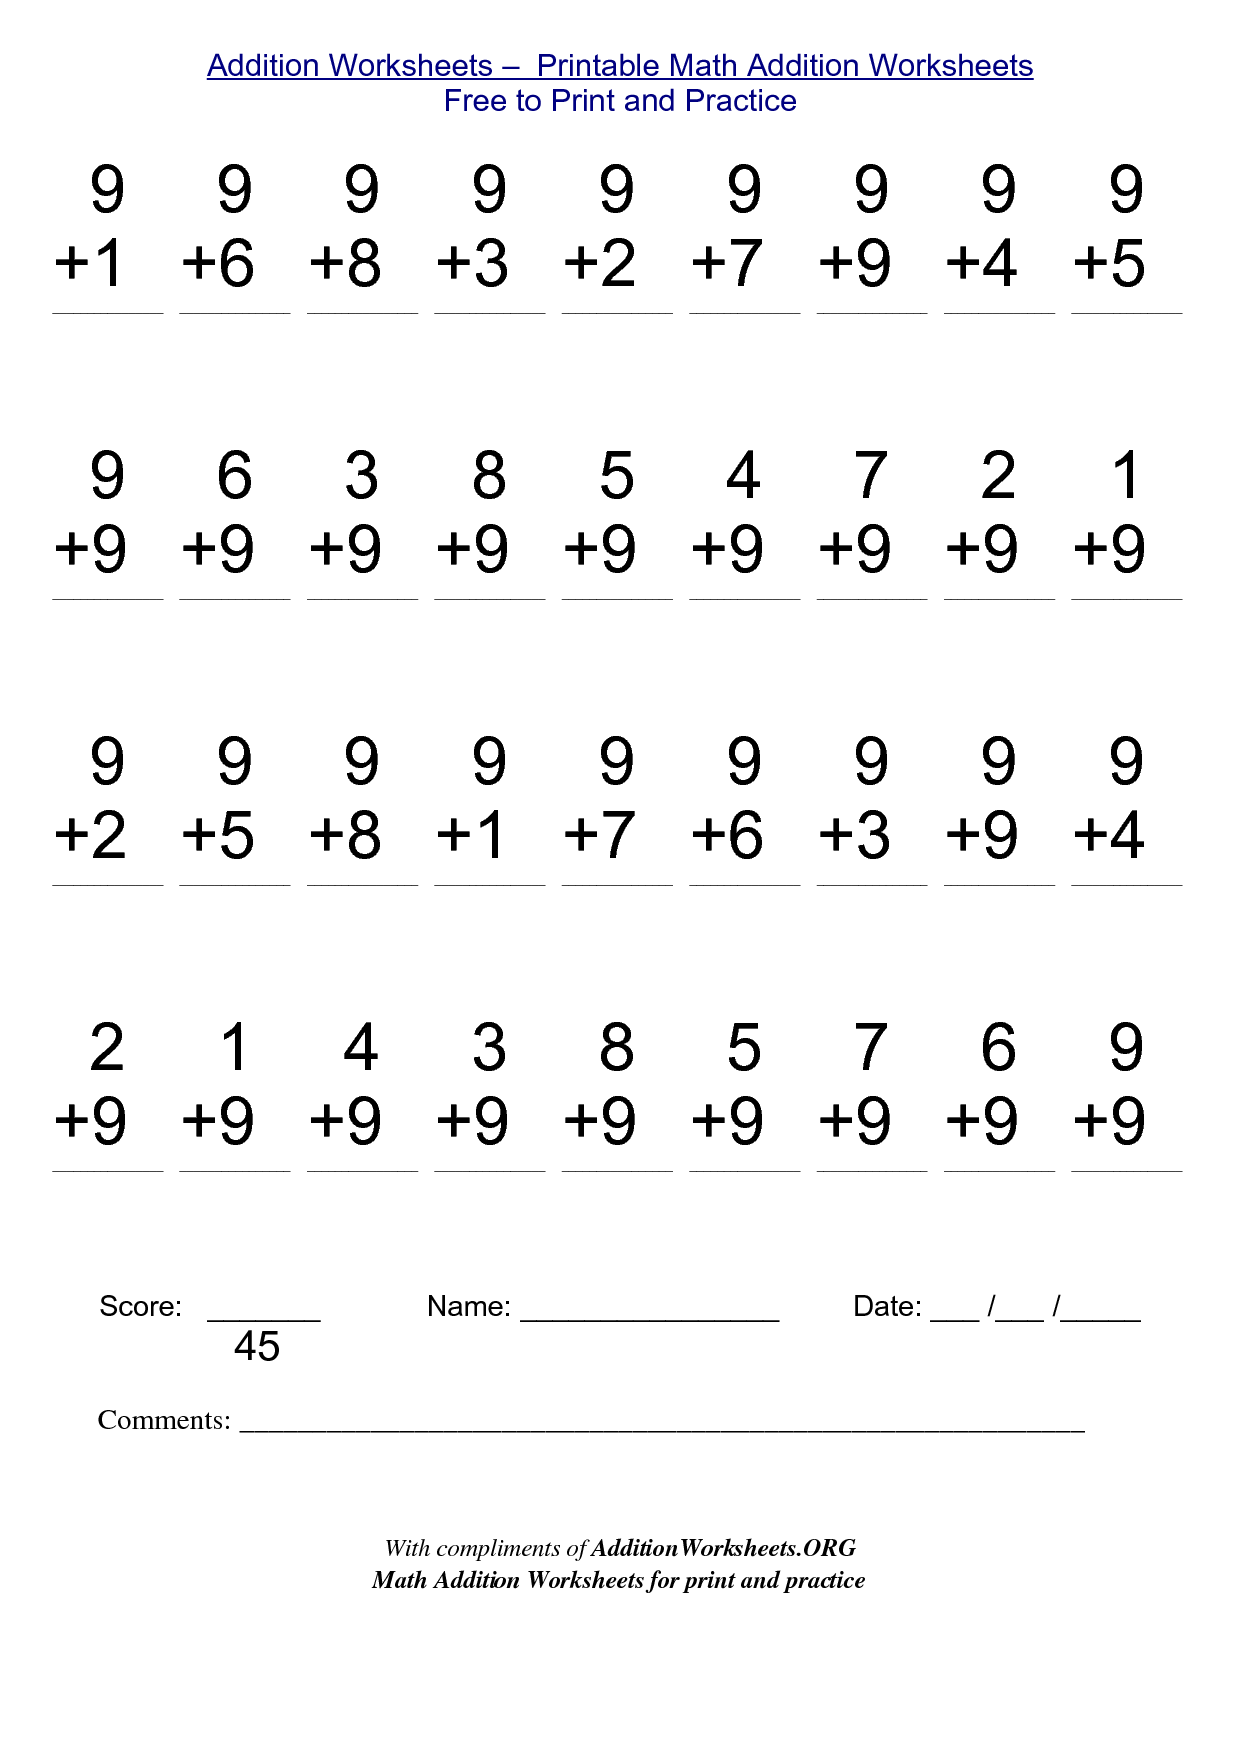 Printables Math Worksheets To Print For 2nd Graders 8 best images of printable math worksheets for 2nd grade free printable